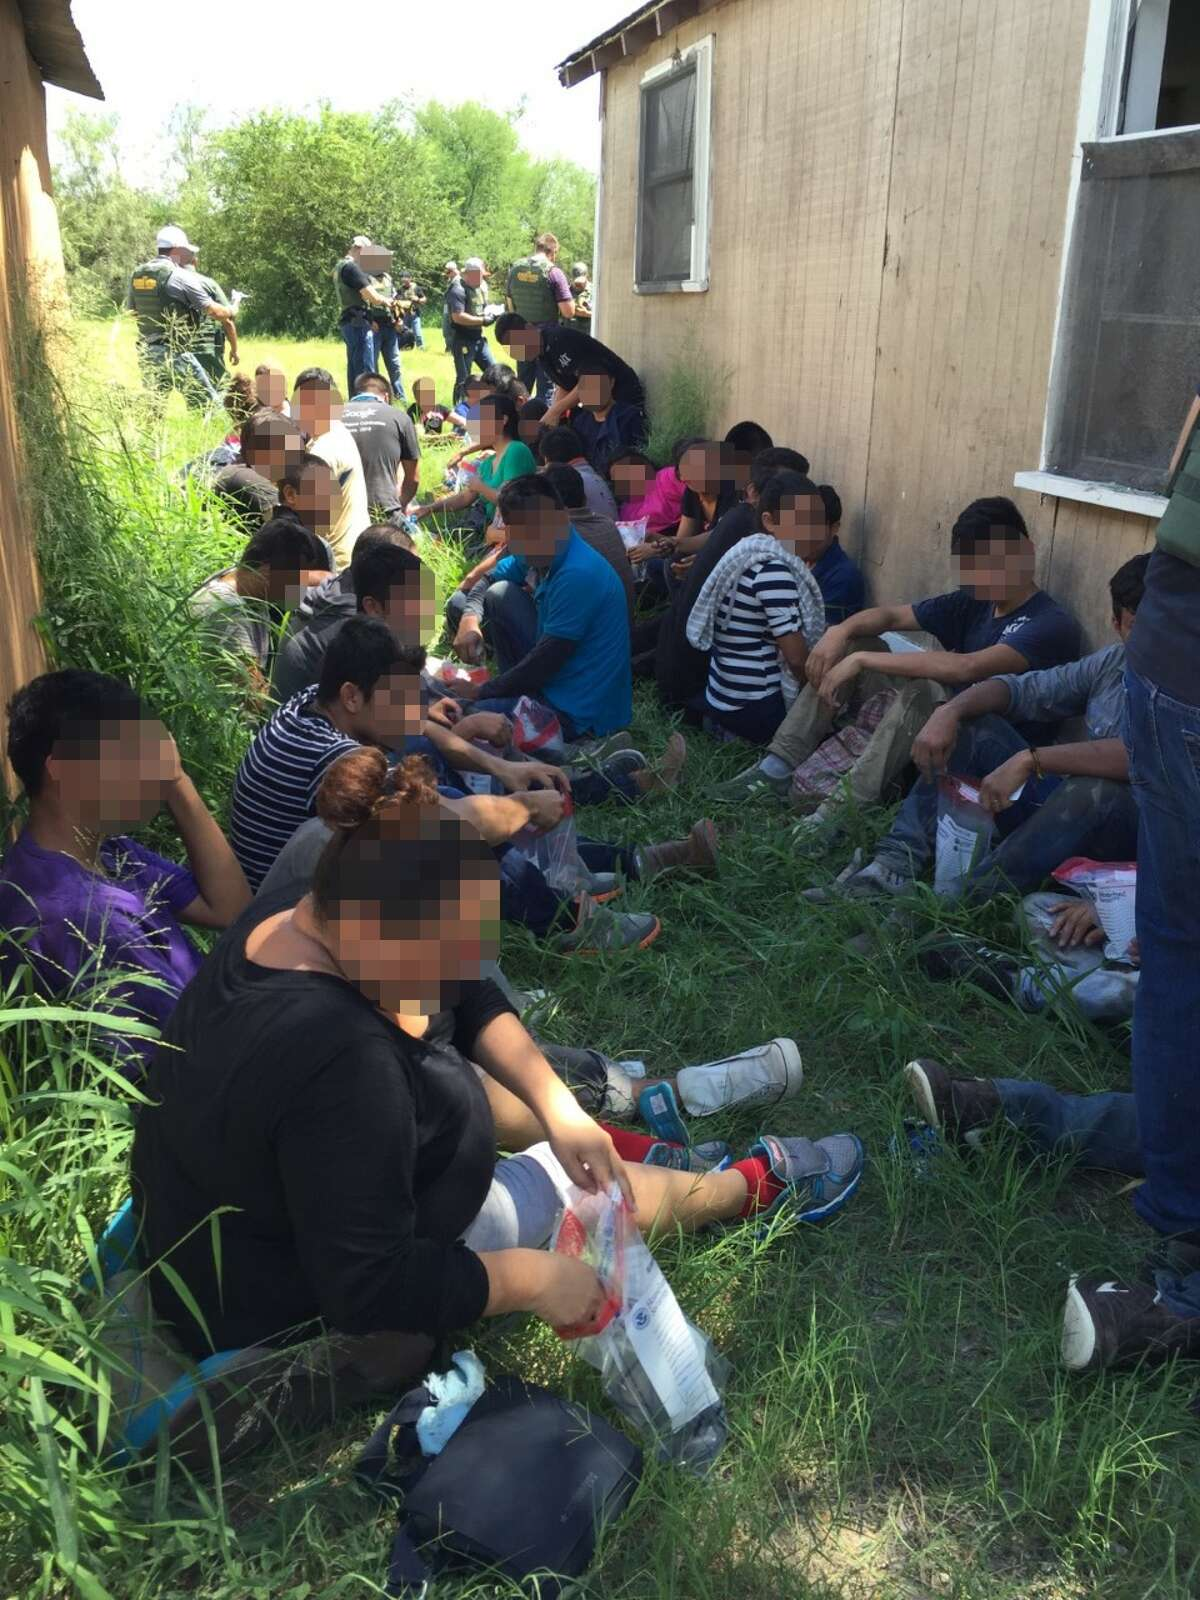 Law enforcement officials apprehended 57 undocumented immigrants from a stash house in Edinburg, Texas, where five were arrested on Sept. 14, 2016.